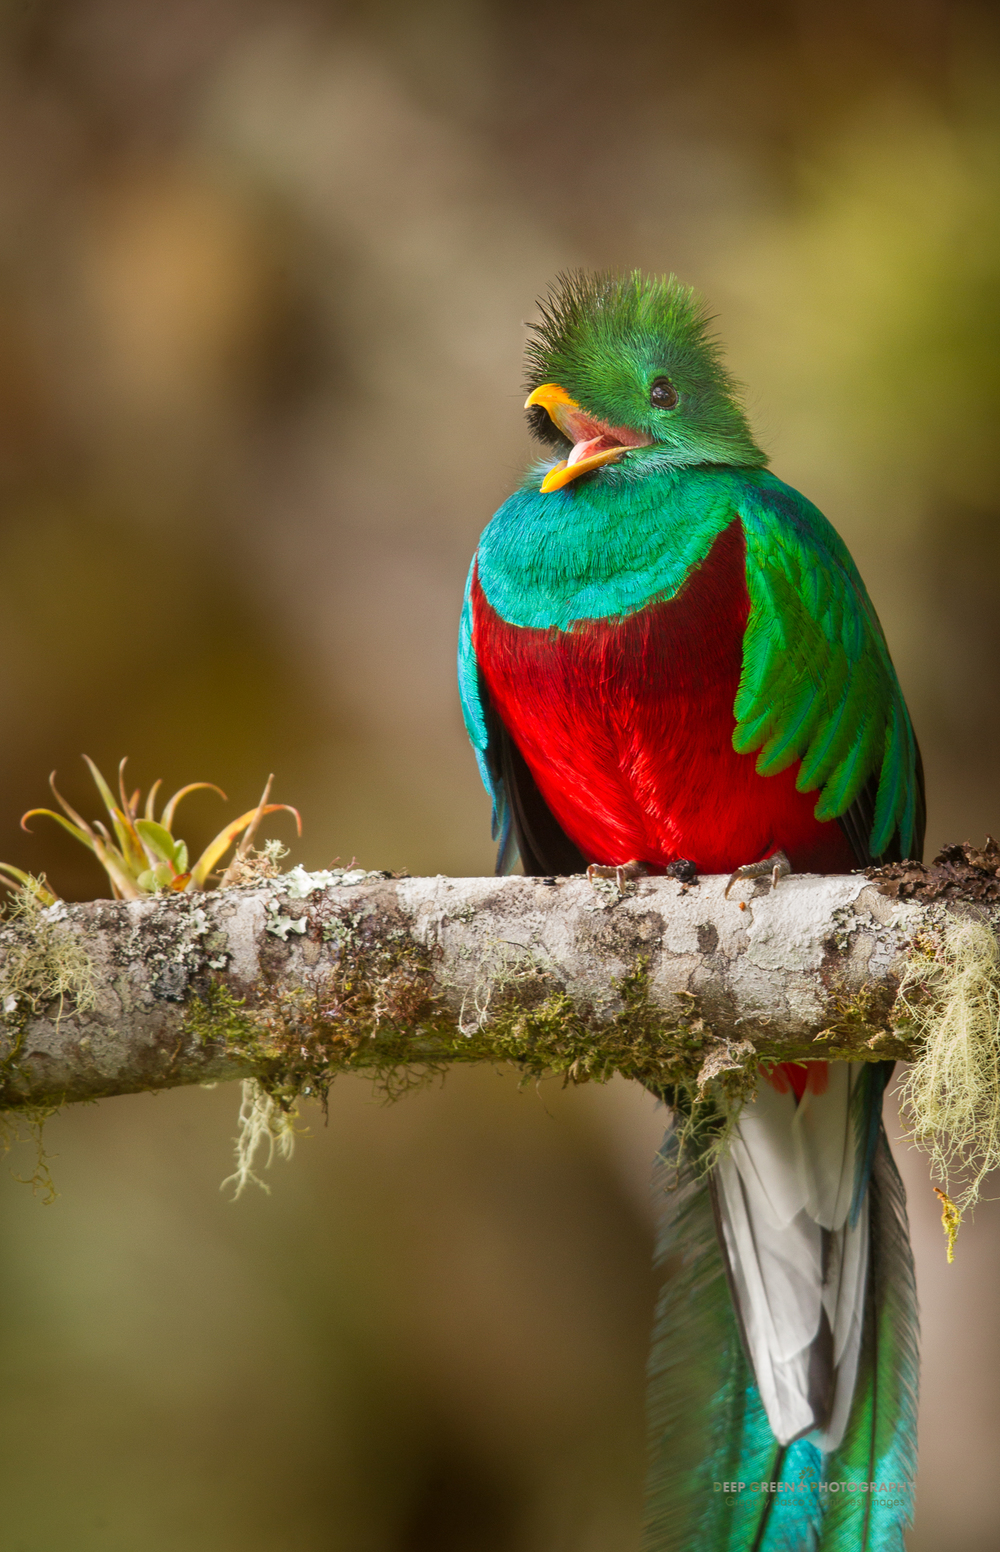 resplendent quetzal calls in the cloud forest